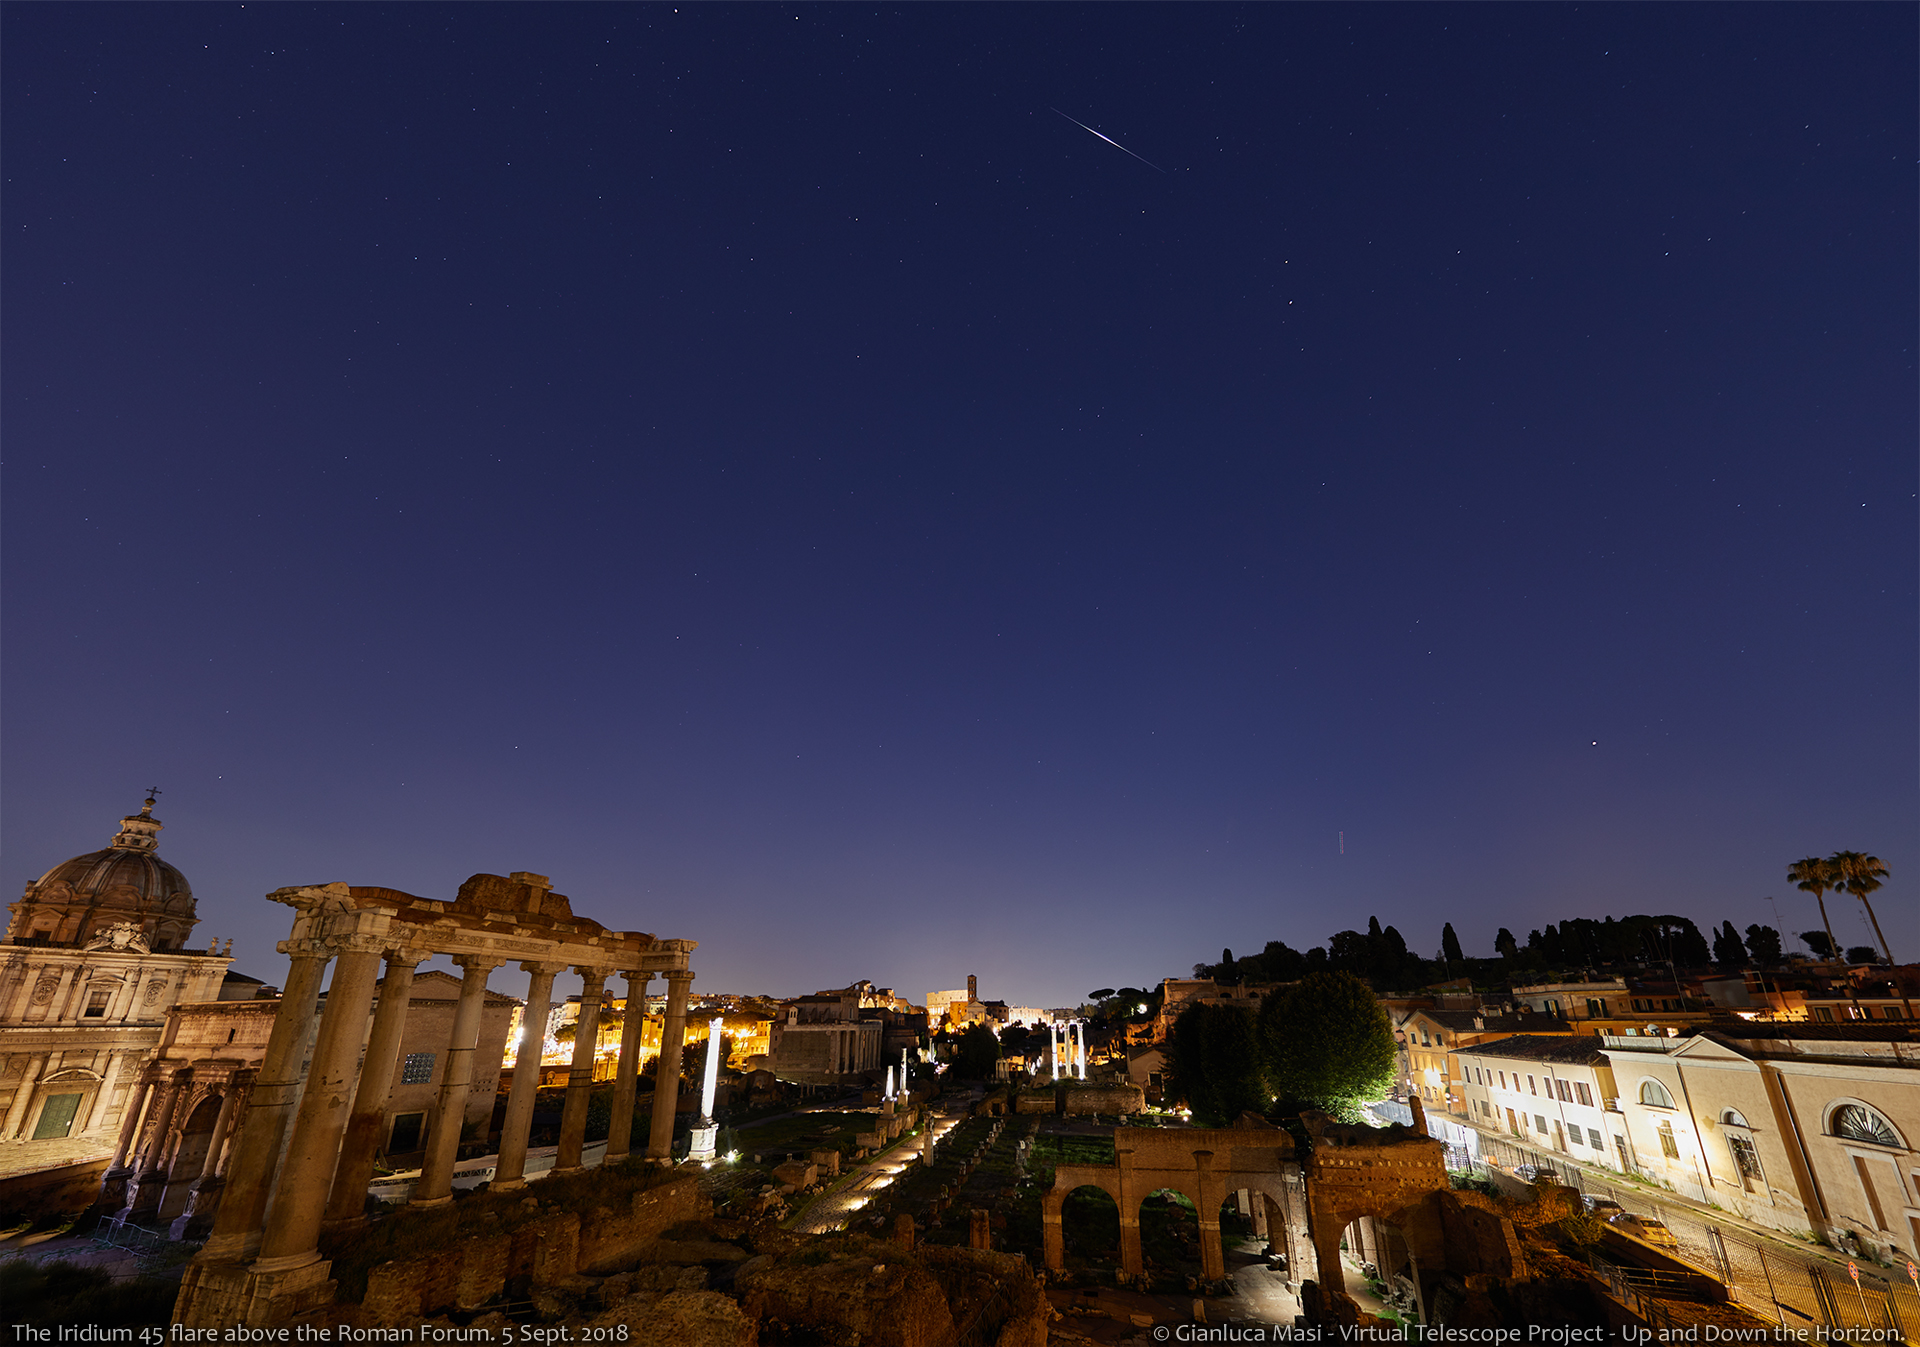 The Iridium 55 satellite flares as bright as mag. -7.5 above the Roman Forum and the Colosseum - 5 Sept. 2018